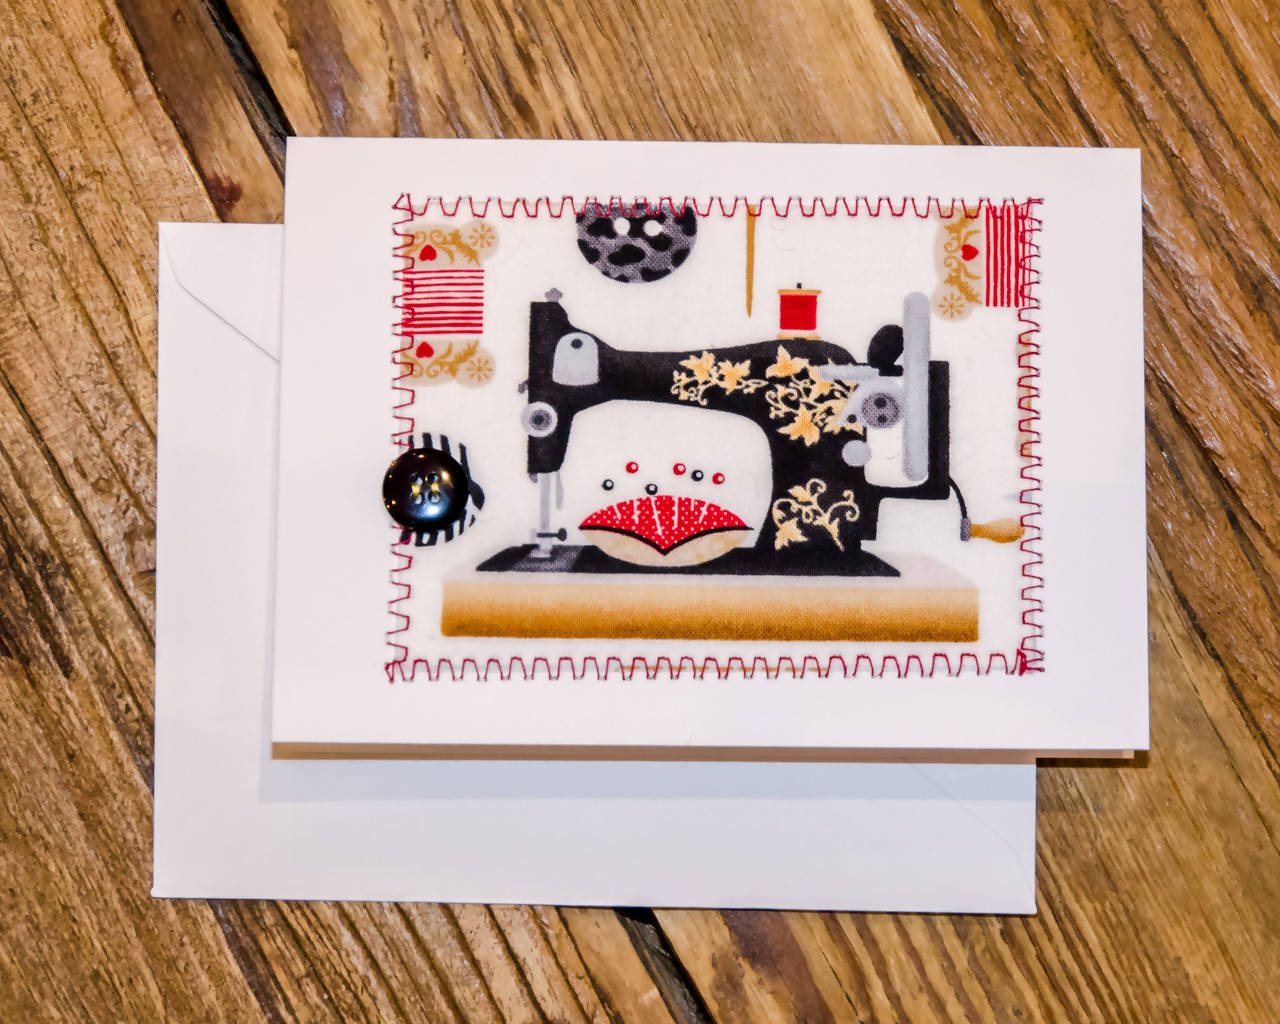 Sewing Machine (old fashioned) Greeting Card - Handmade - Fabric on paper / Blank Inside for any occasion